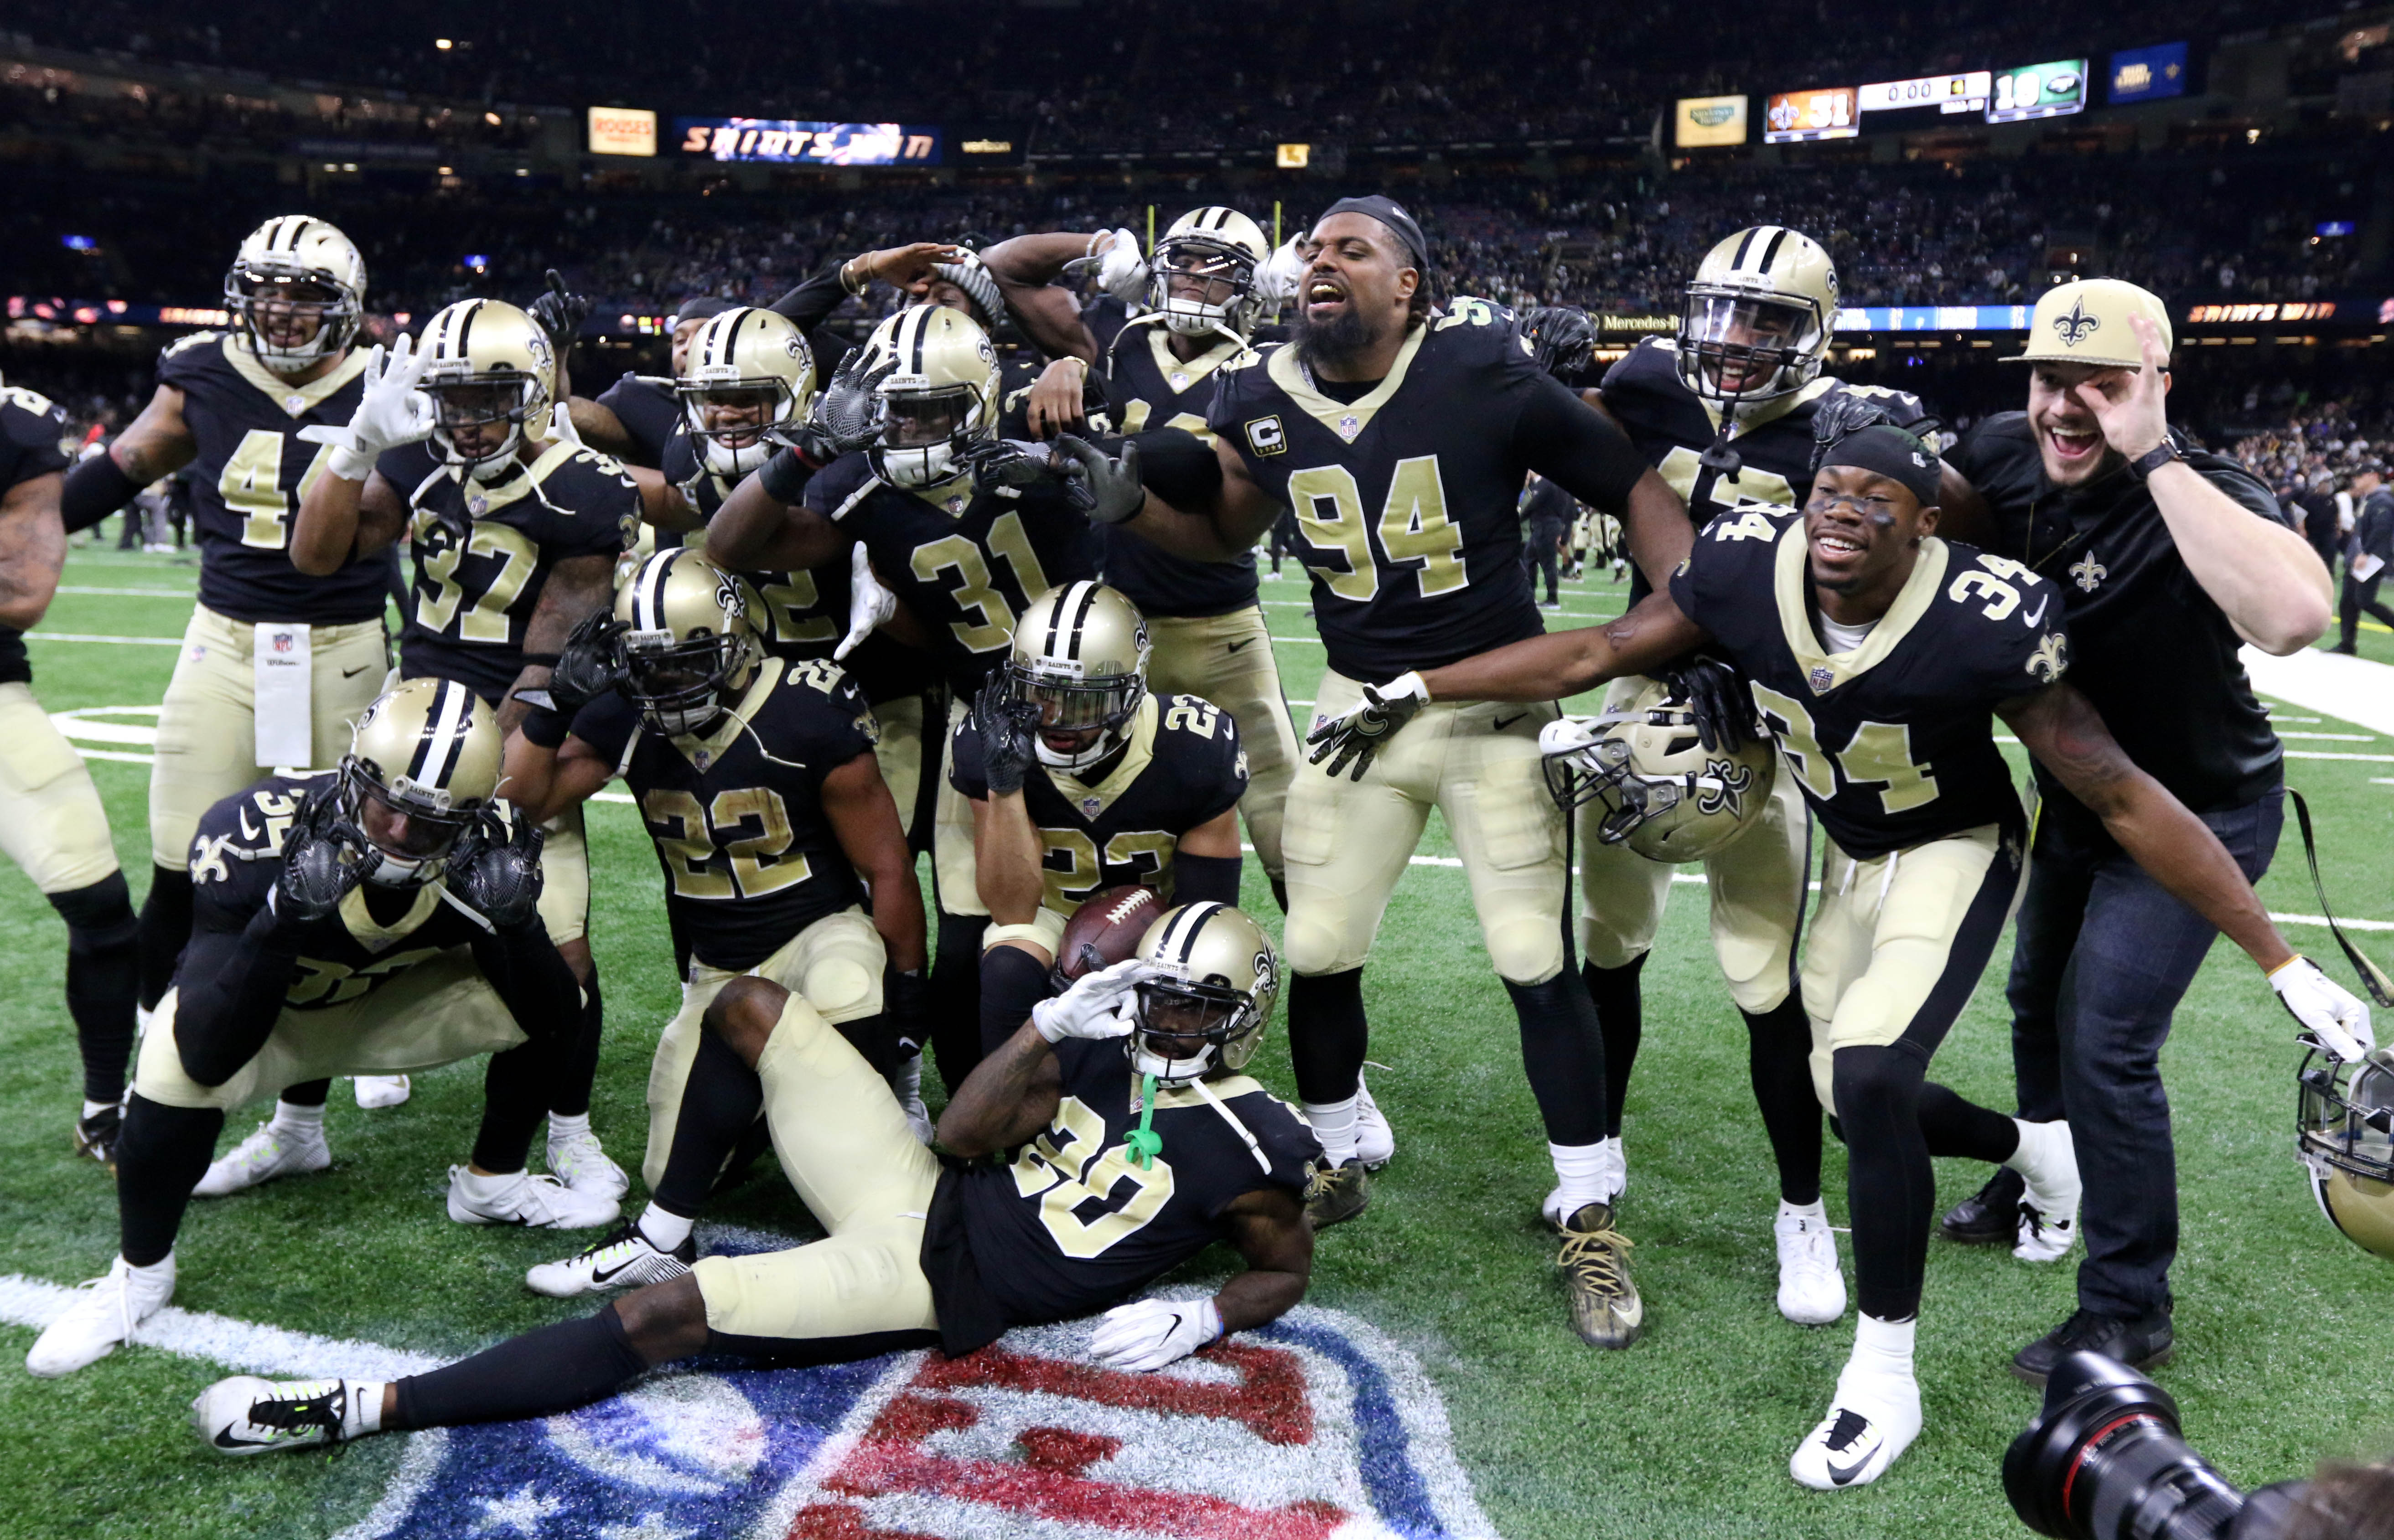 Dec 17, 2017; New Orleans, LA, USA; The New Orleans Saints defense poses for a photo after cornerback Marshon Lattimore (23) intercepted a pass on the last play of the game against the New York Jets at the Mercedes-Benz Superdome. The Saints won, 31-19. Mandatory Credit: Chuck Cook-USA TODAY Sports